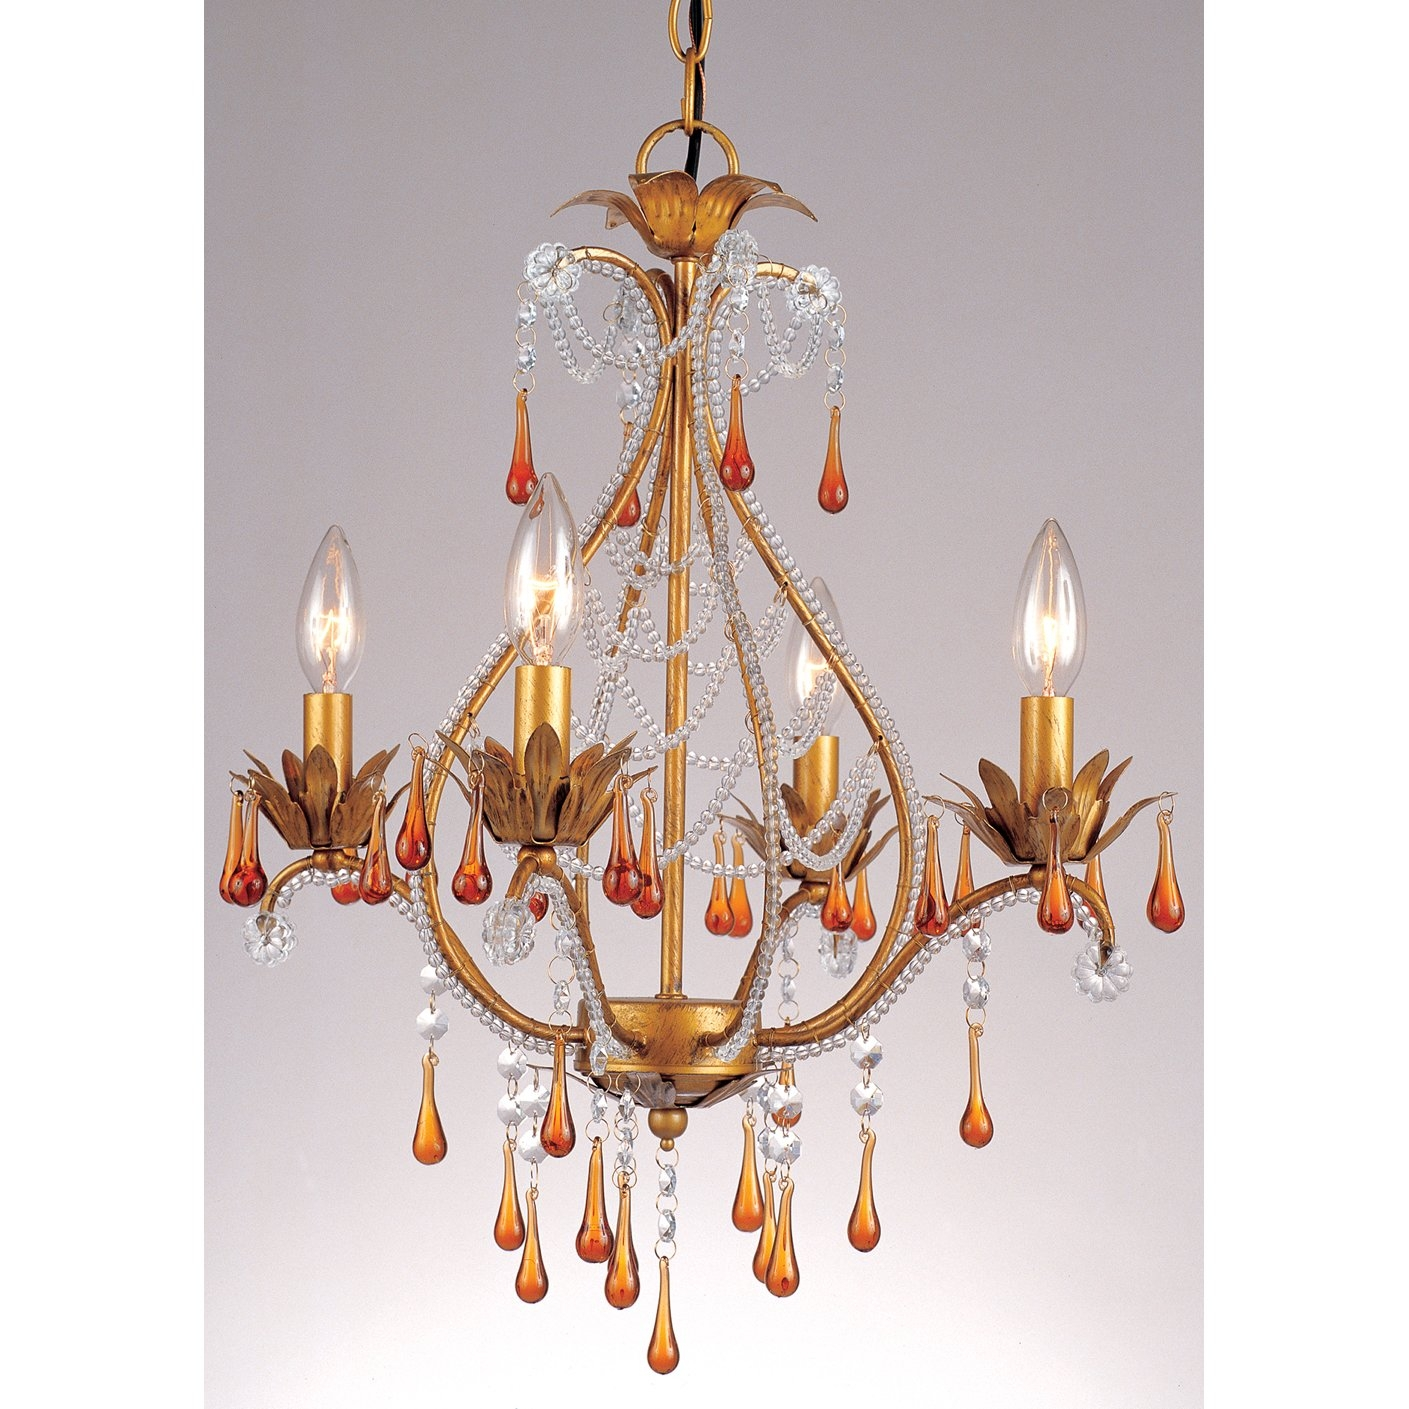 French Gold Chandeliers Youll Love Wayfair With Regard To French Gold Chandelier (Image 8 of 14)